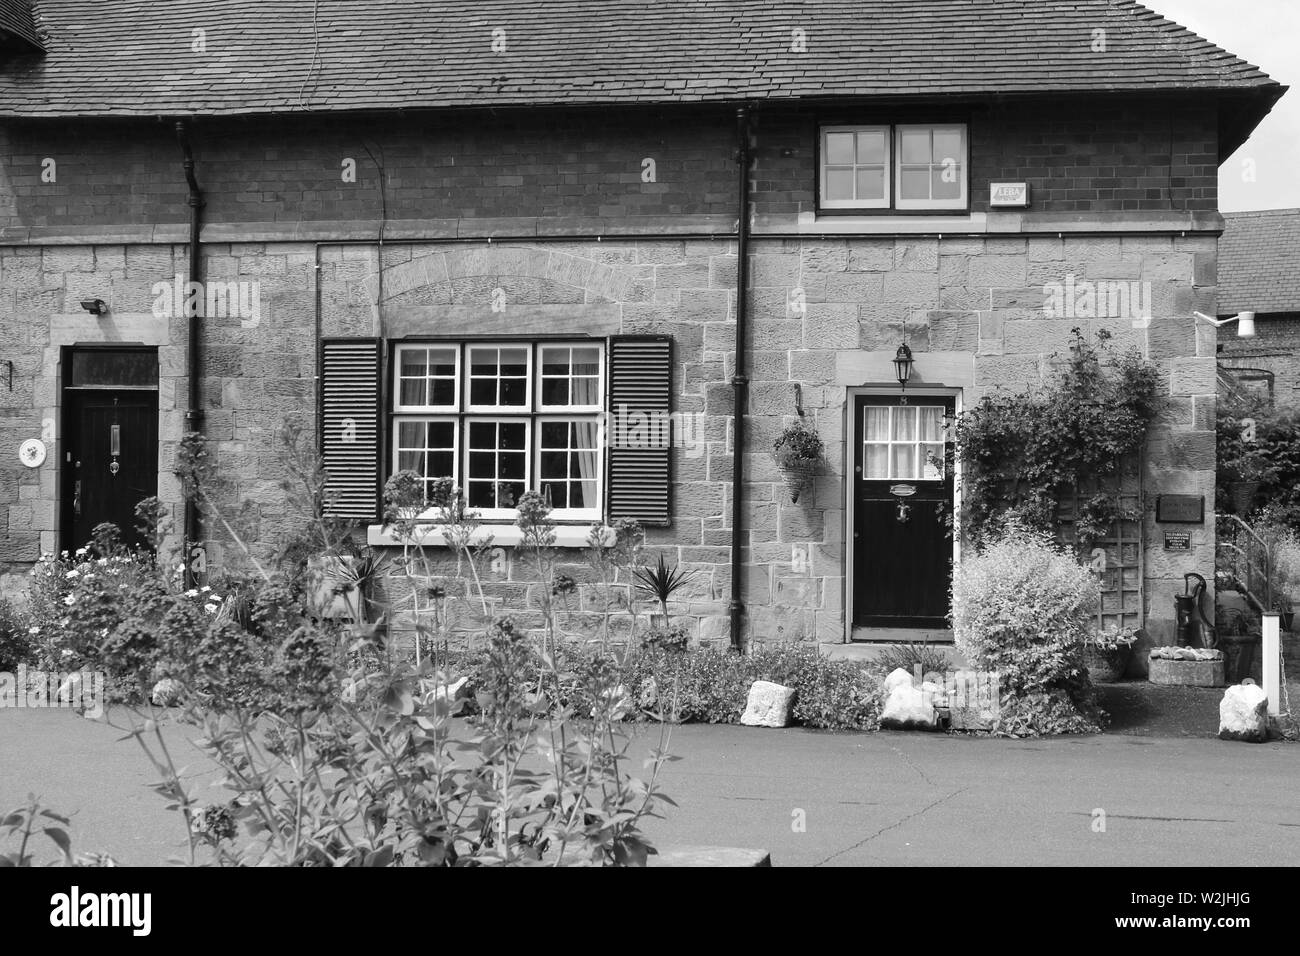 Hawarden is a small village in Clwyd wales - Stock Image